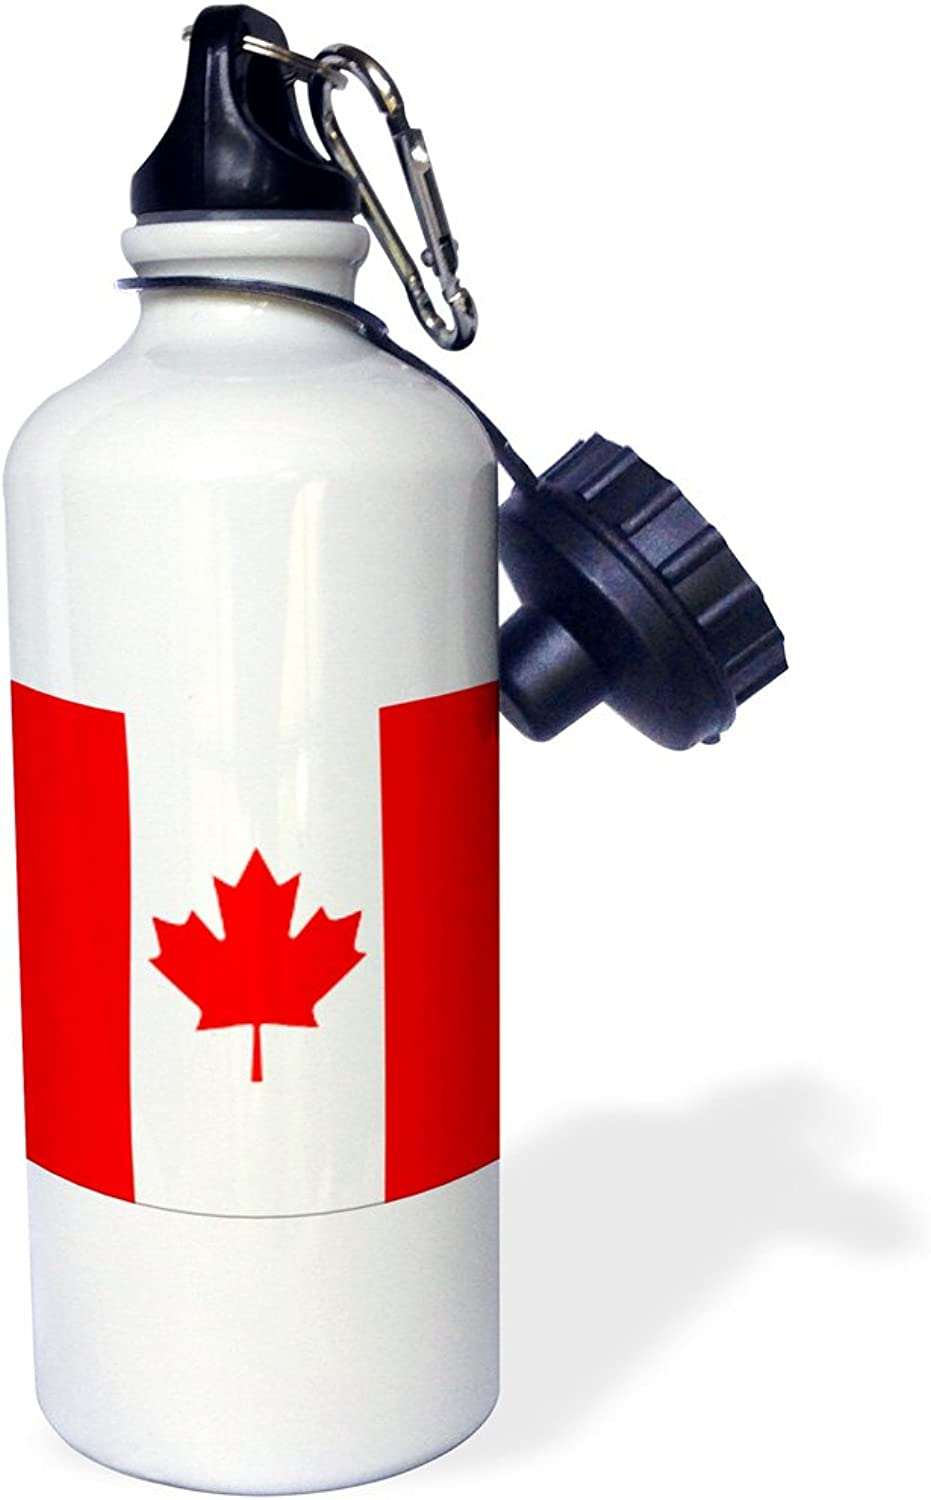 3dpink wb_4561_1 Italian Flag Sports Water Bottle, 21 oz, White